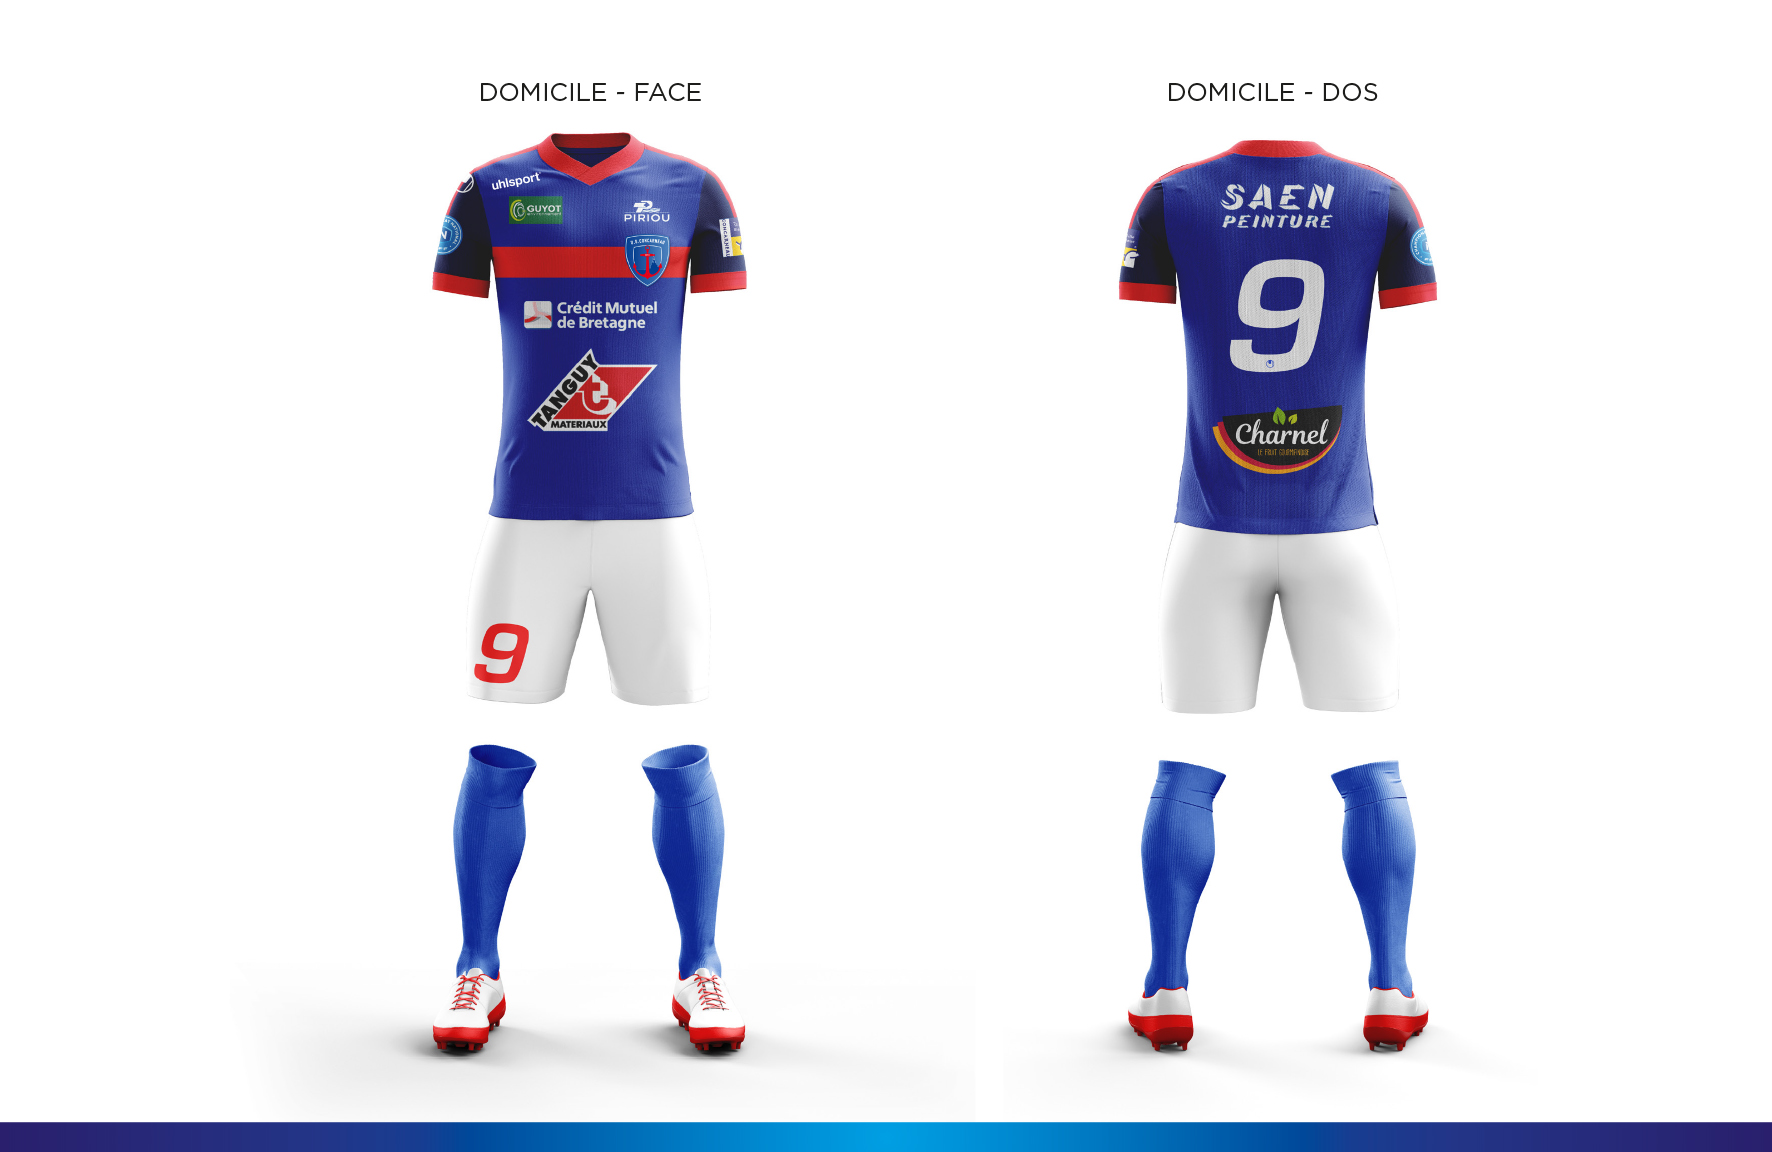 USC_Maillot finaux-3